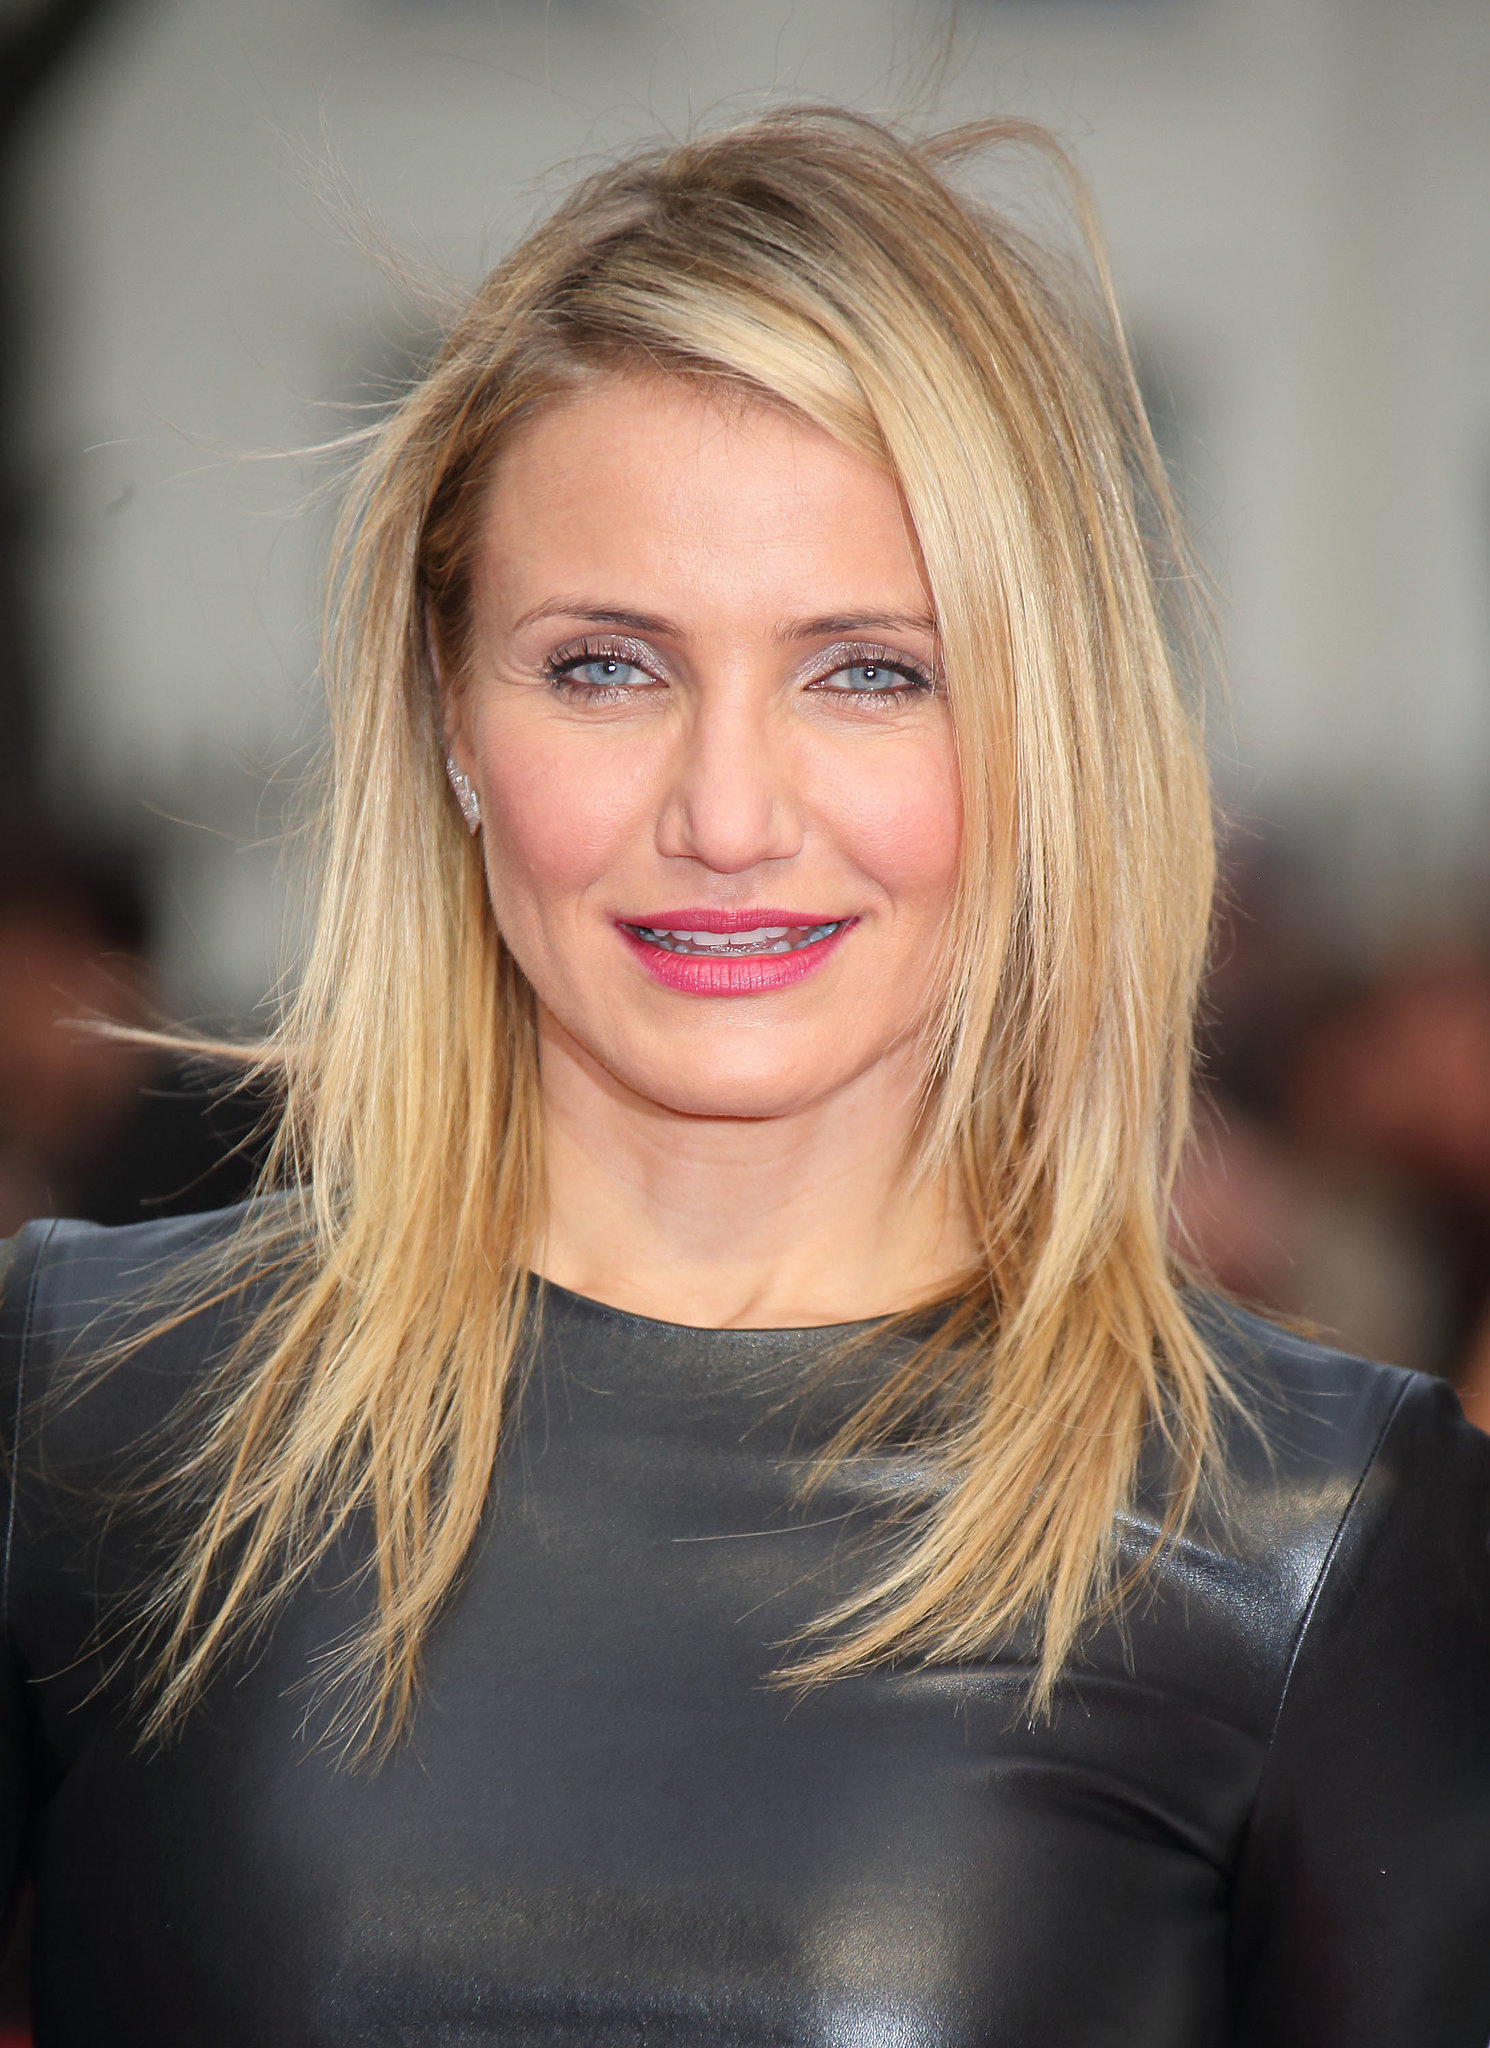 Cameron Diaz - photos, news, filmography, quotes and facts ...Cameron Diaz Agent